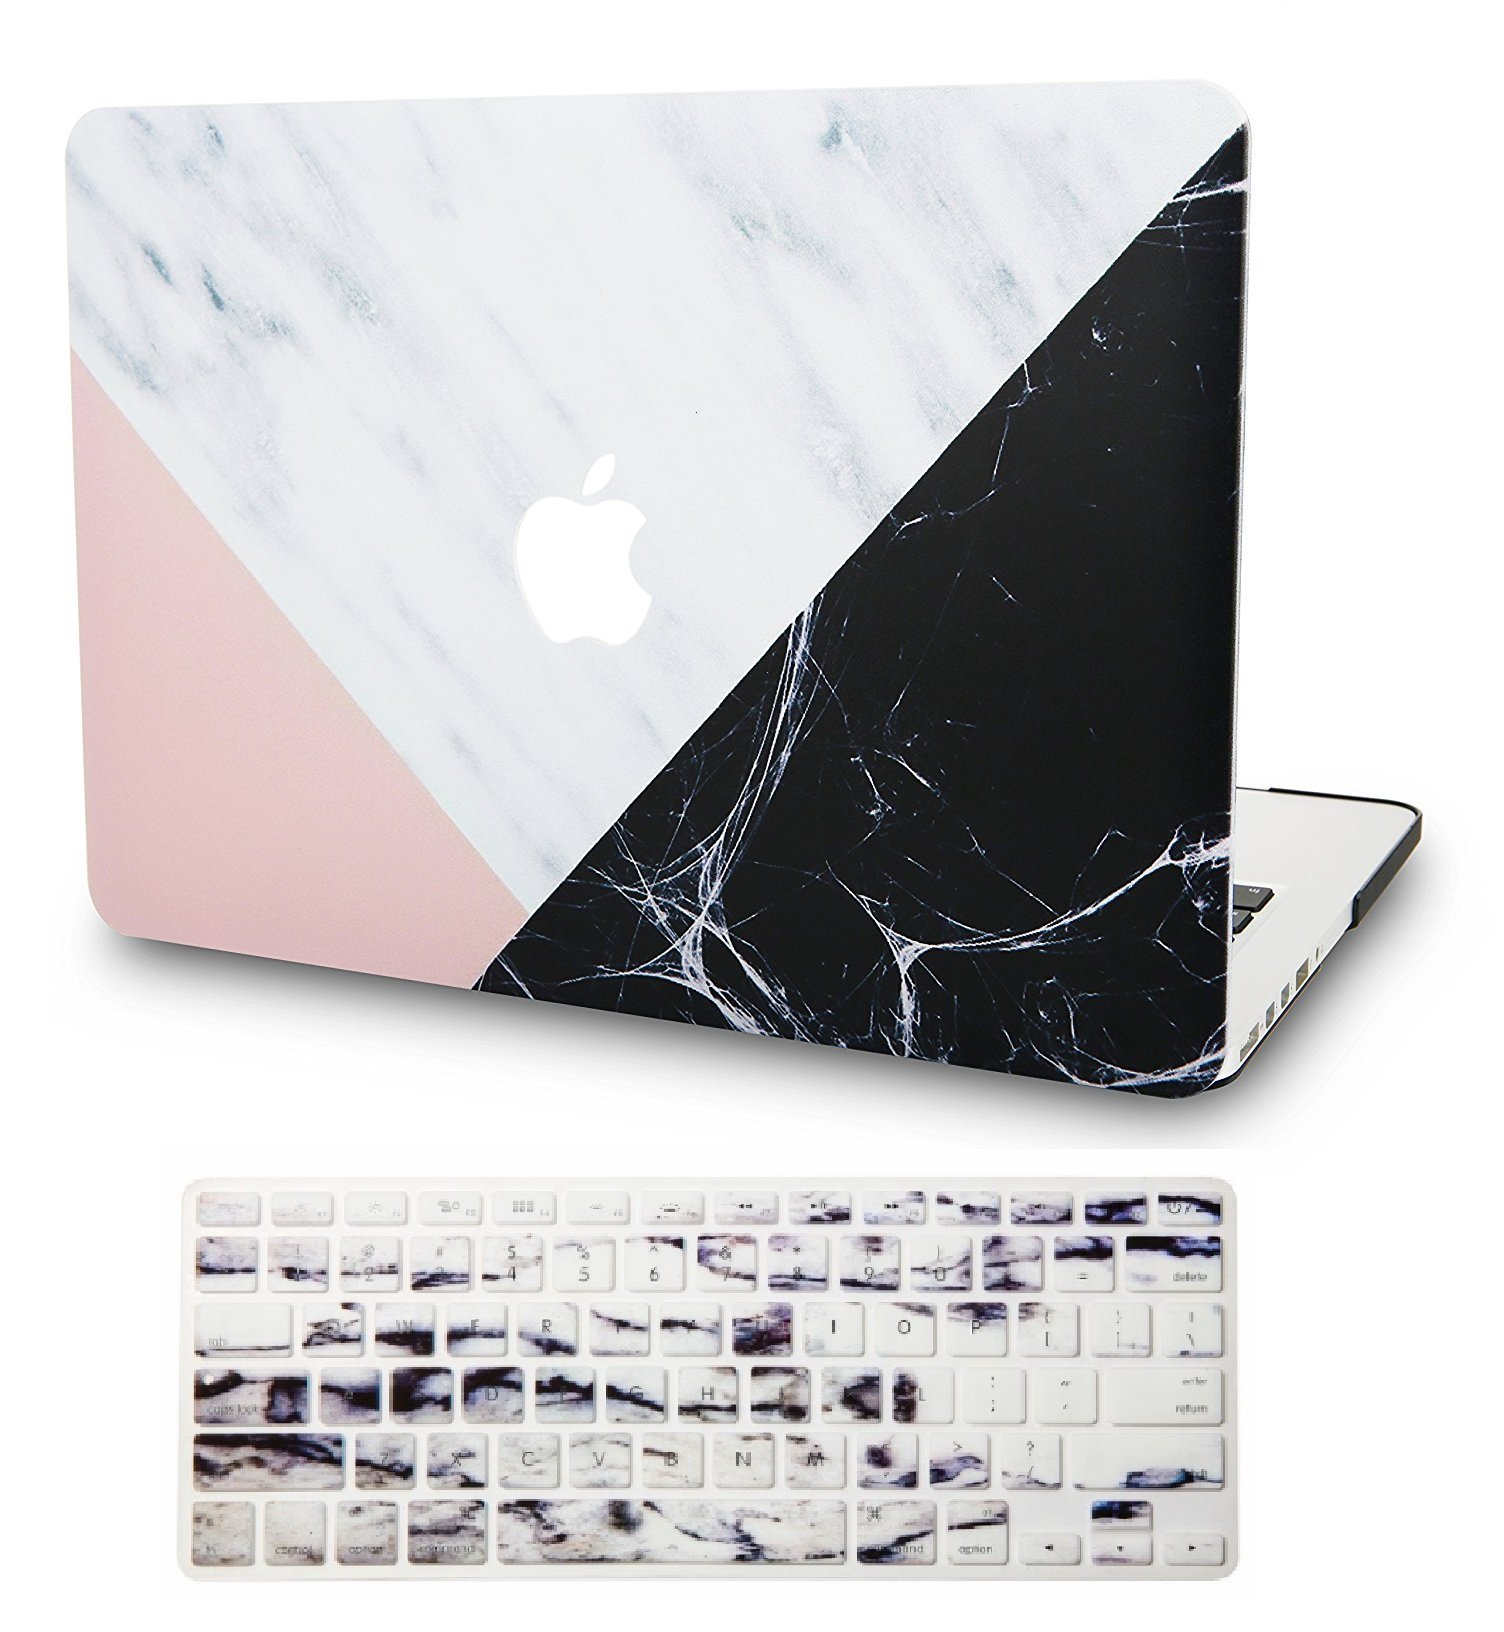 """KECC Laptop Case for Old MacBook Pro 13"""" (CD Drive) w/Keyboard Cover Plastic Hard Shell Cover A1278 2 in 1 Bundle (White Marble Pink Black)"""